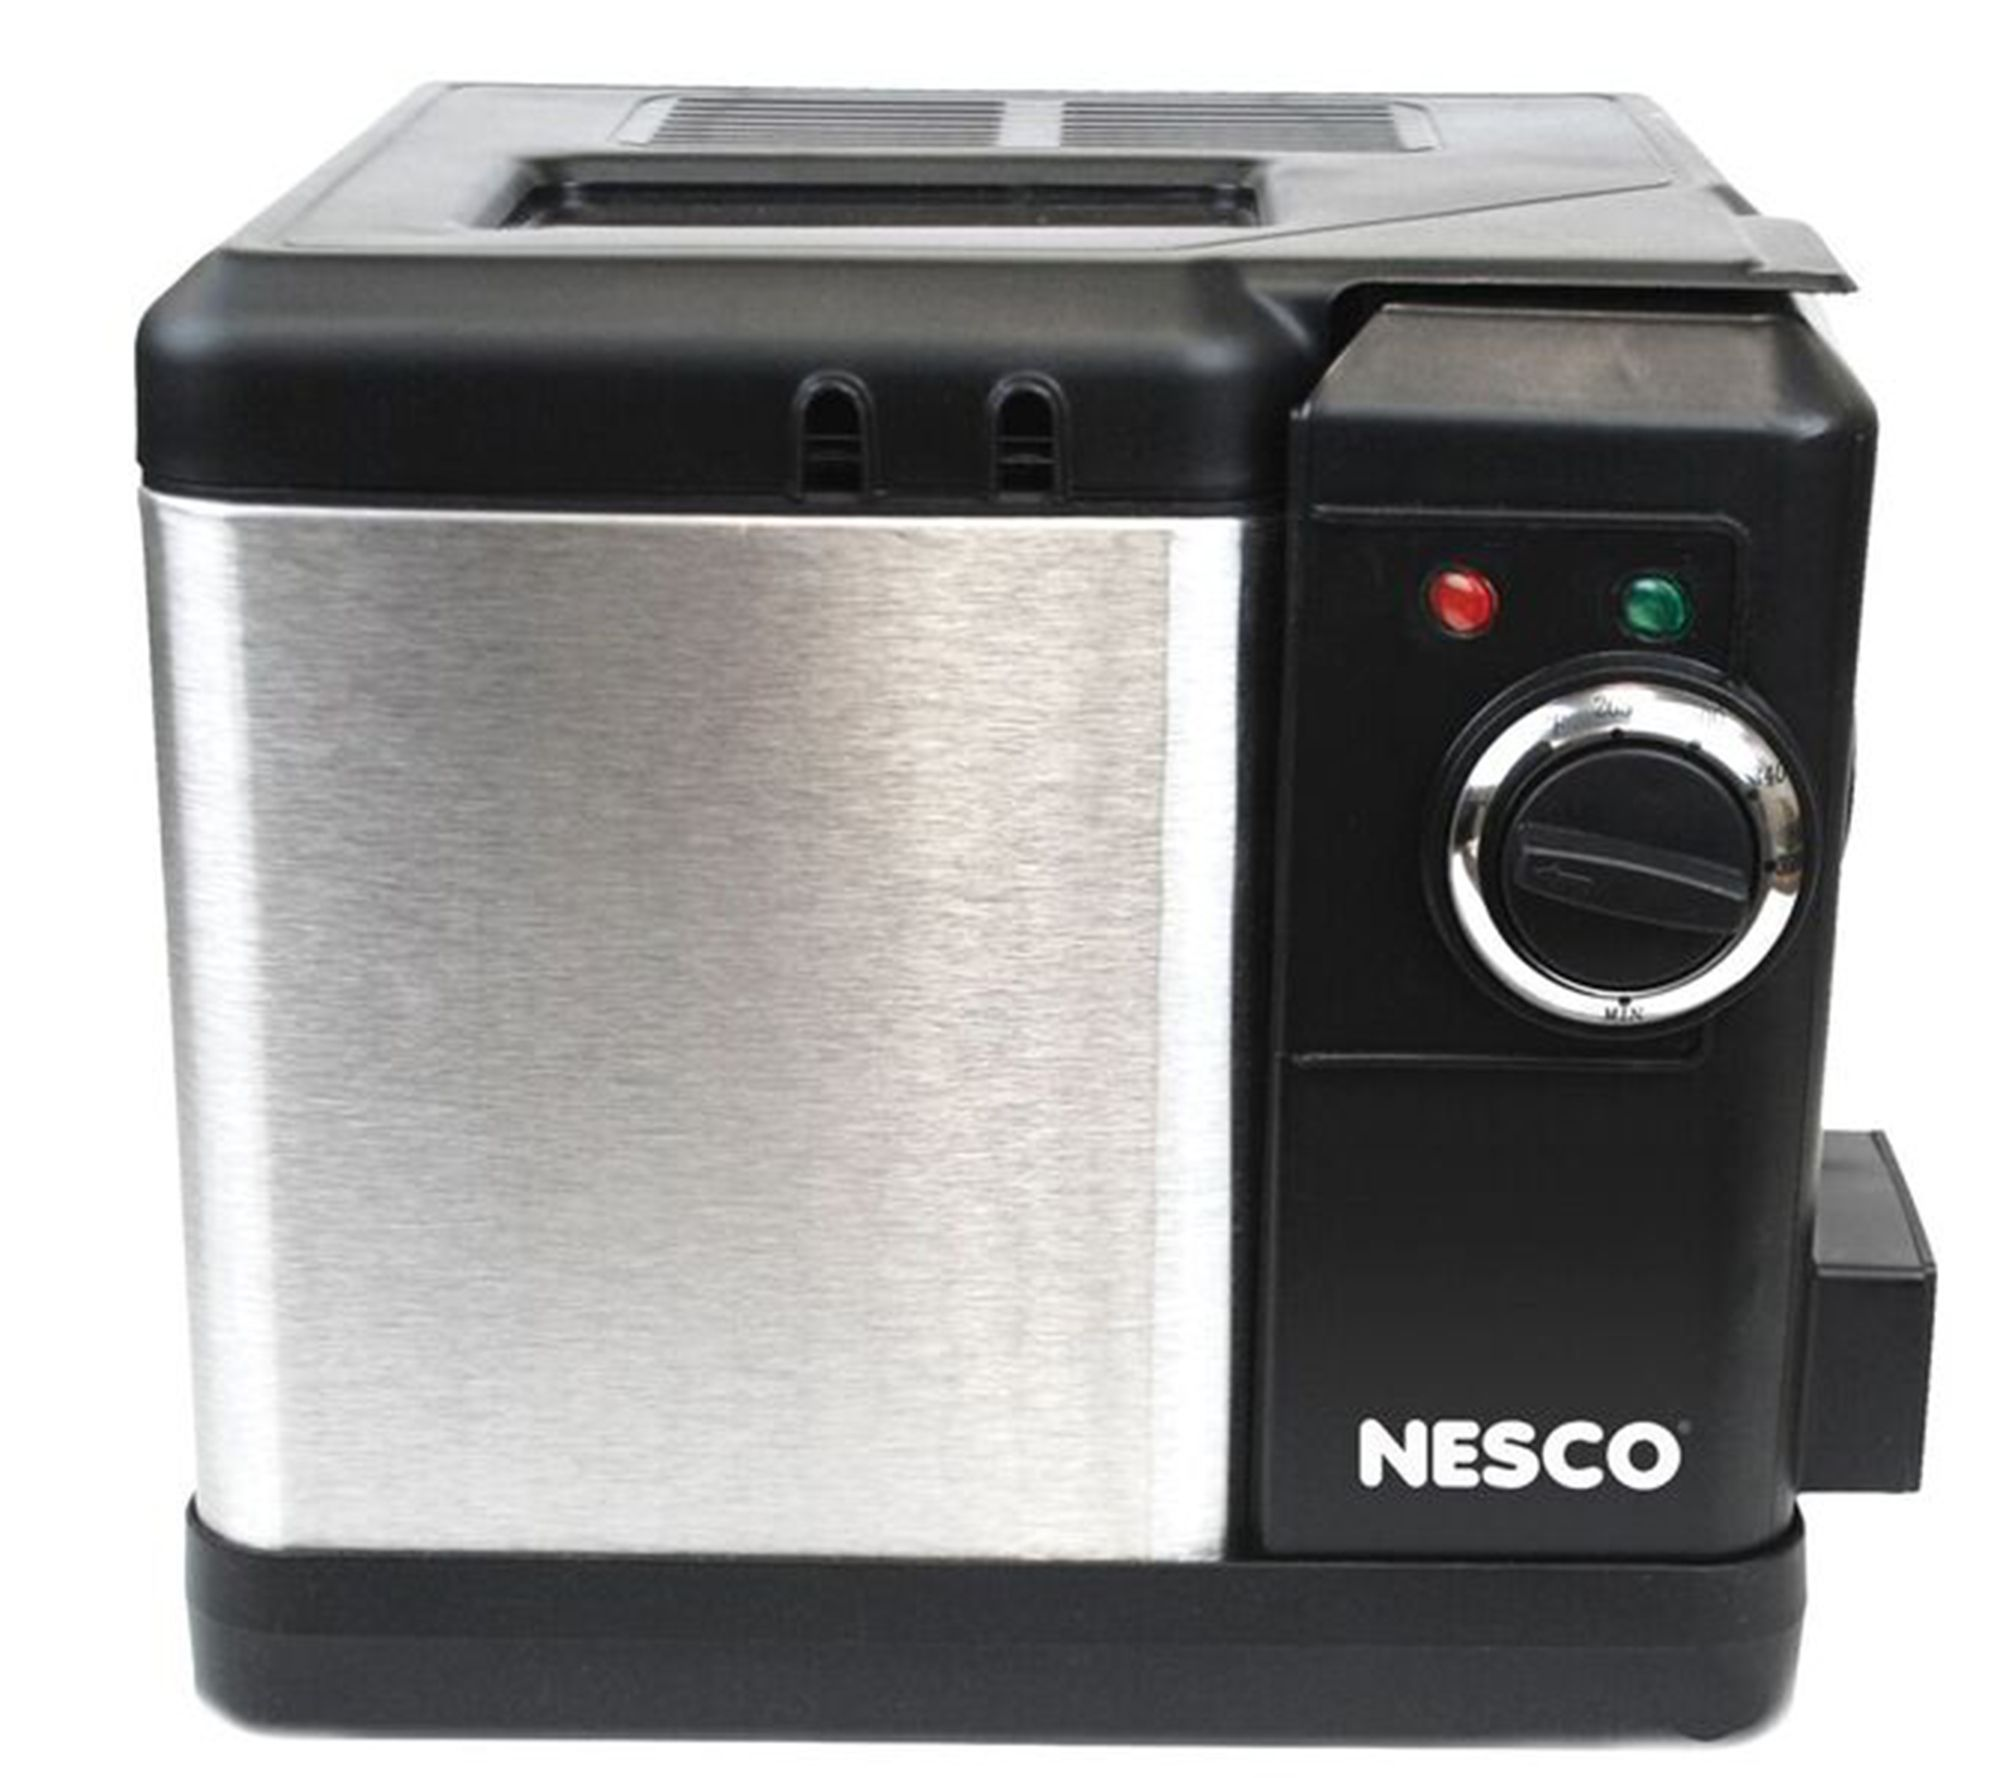 nesco 2 5 liter deep fryer. Black Bedroom Furniture Sets. Home Design Ideas